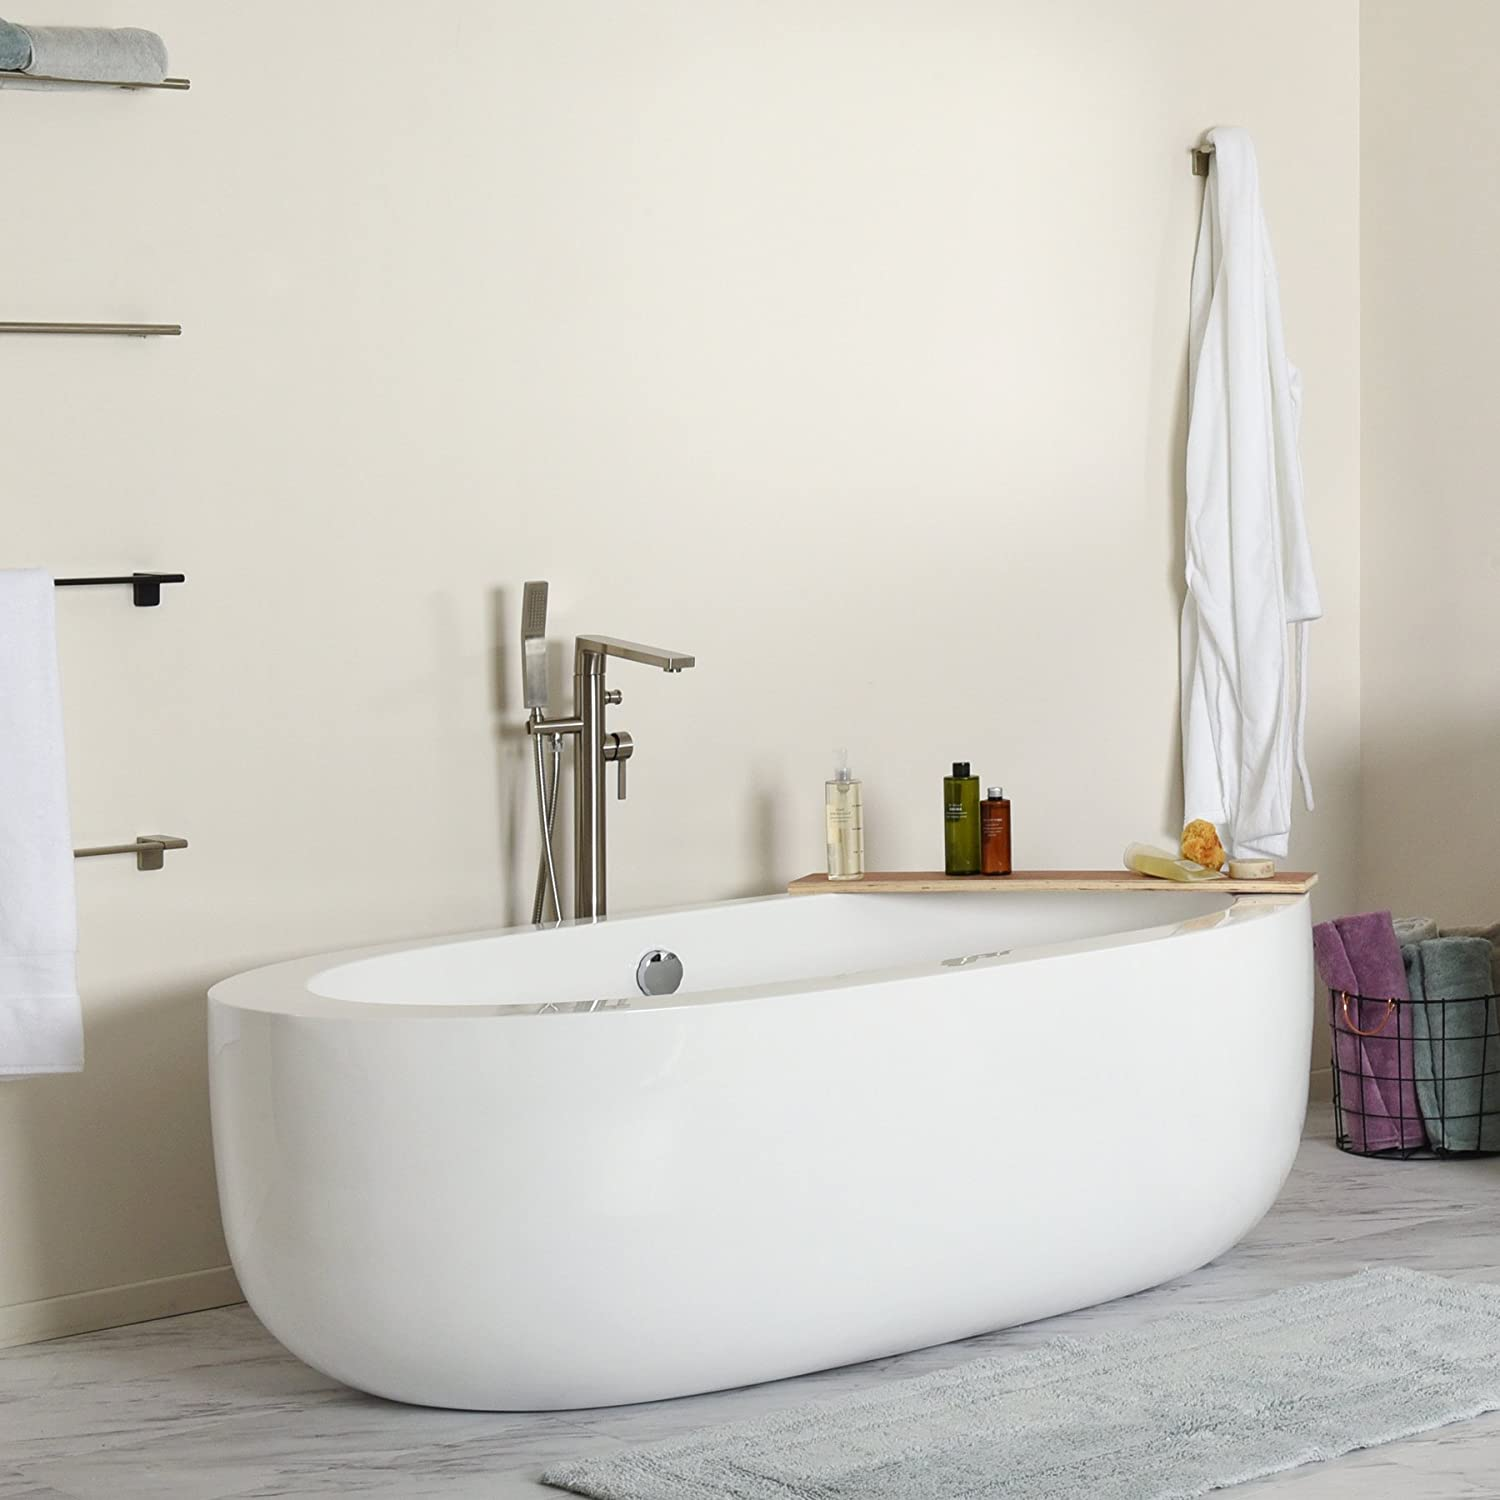 6 Oversized Bathtubs For Tall People People Living Tall